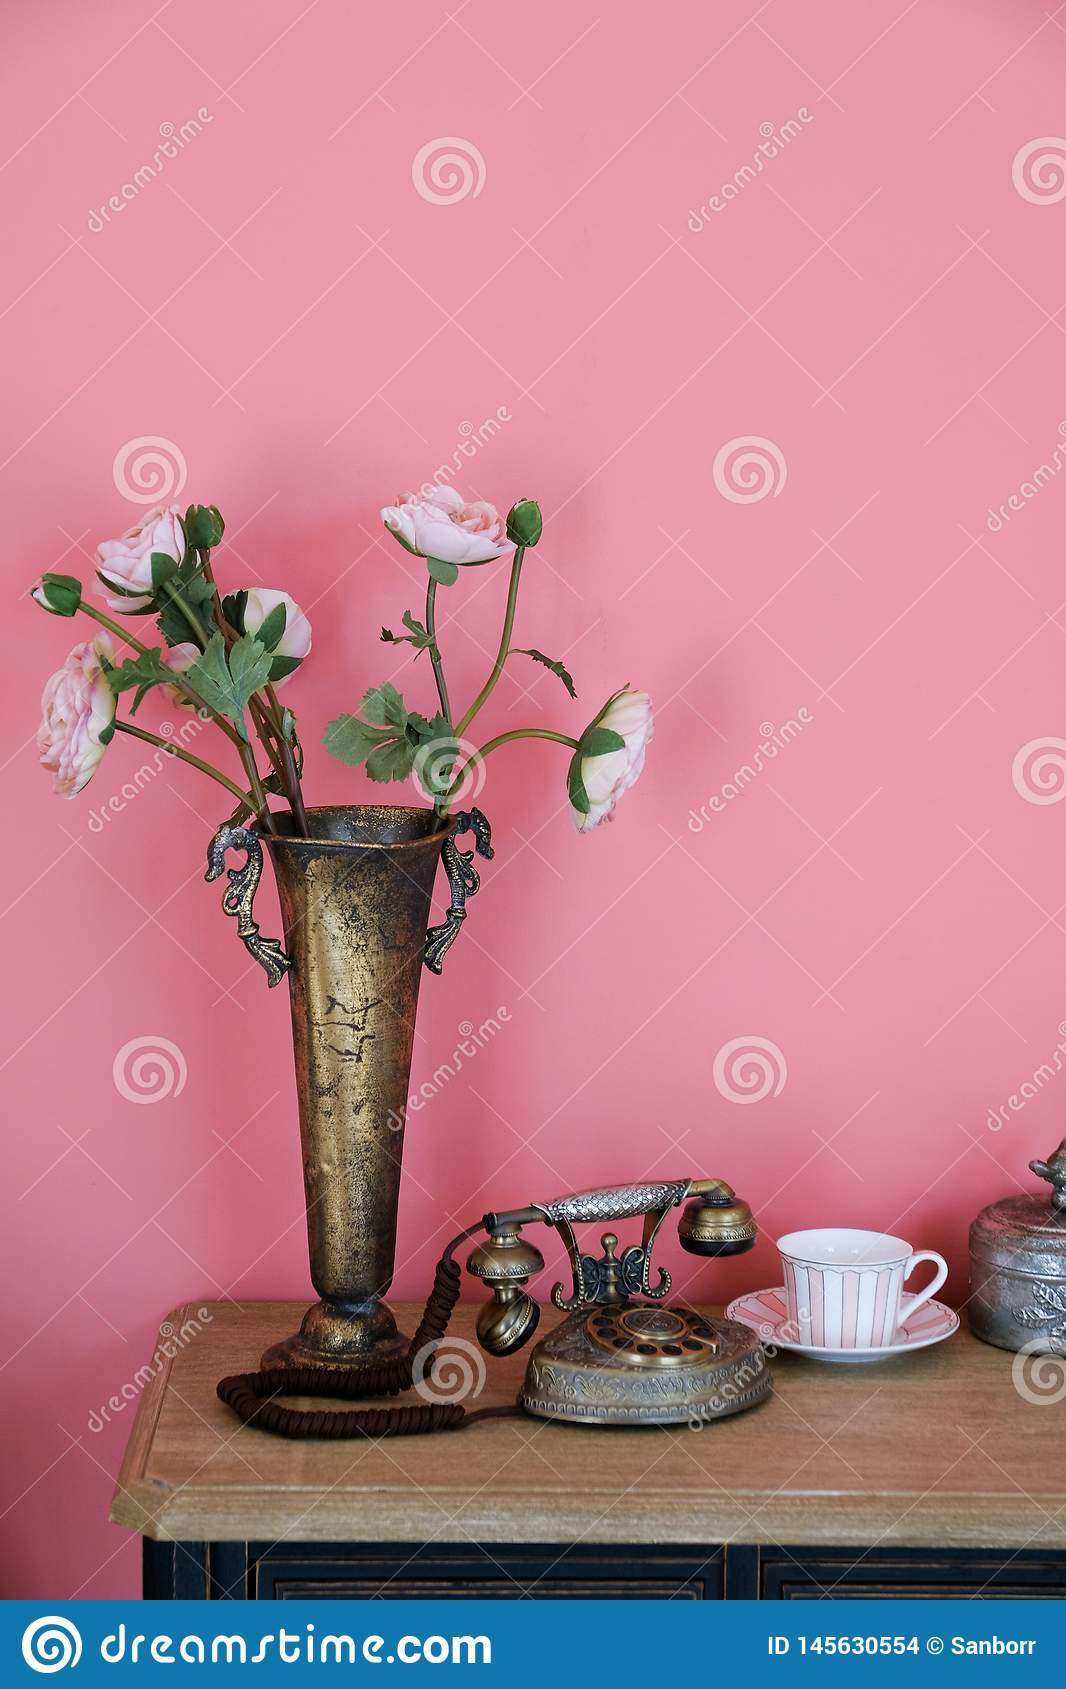 Artificial pink rose flowers in an old iron copper vase on a wooden table, against a pink wall. Near the old phone, a mug on a